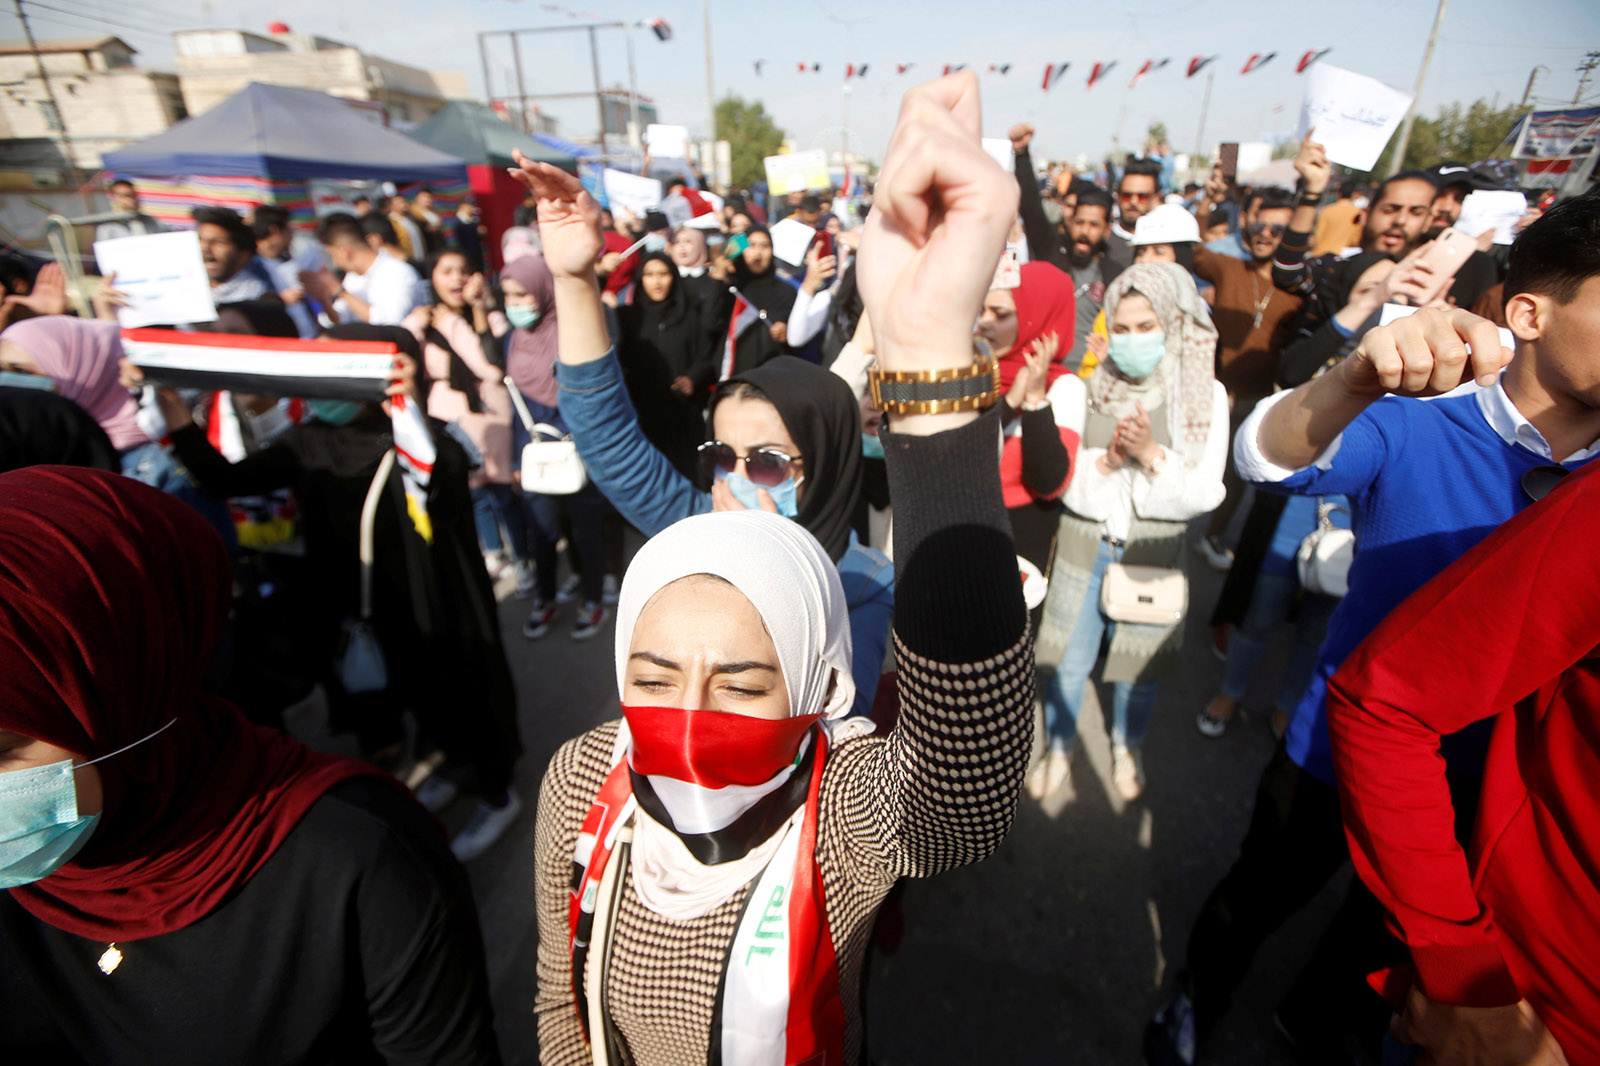 University students protesting American and Iranian intervention in Iraq